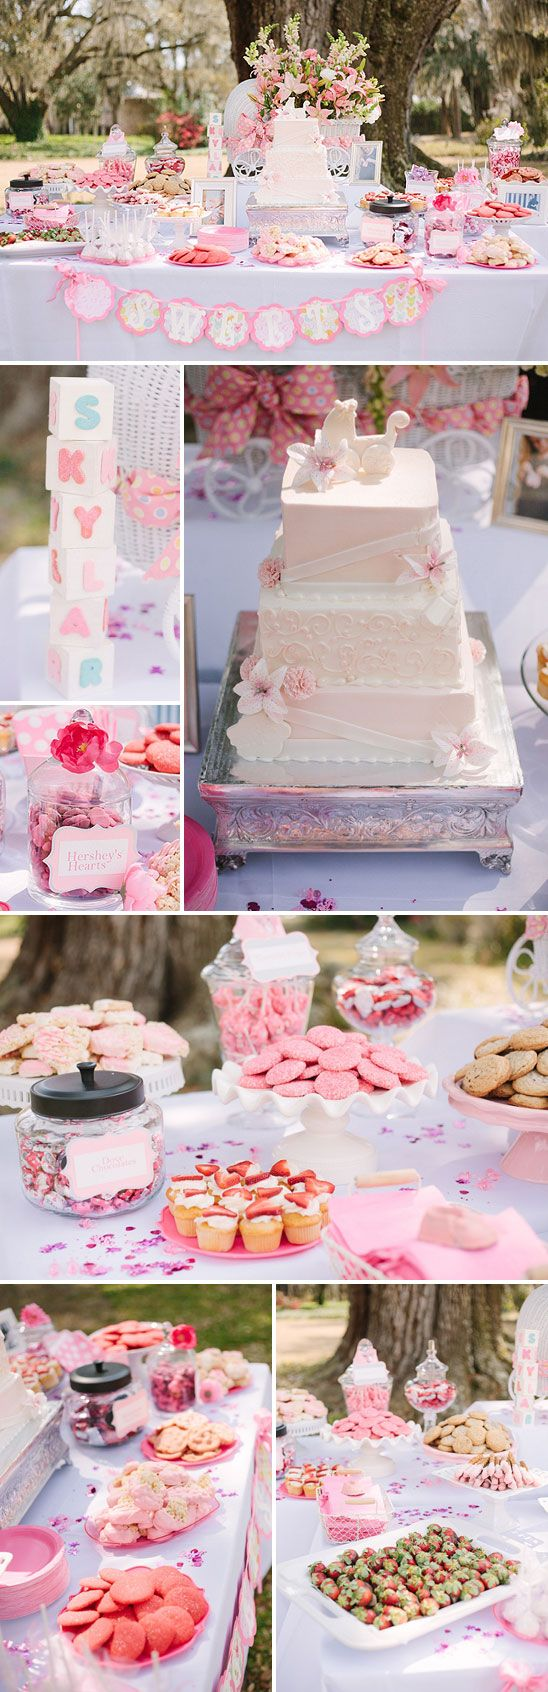 Beautiful Southern Baby Shower in Pink - this is what I want my baby shower to be exactly like